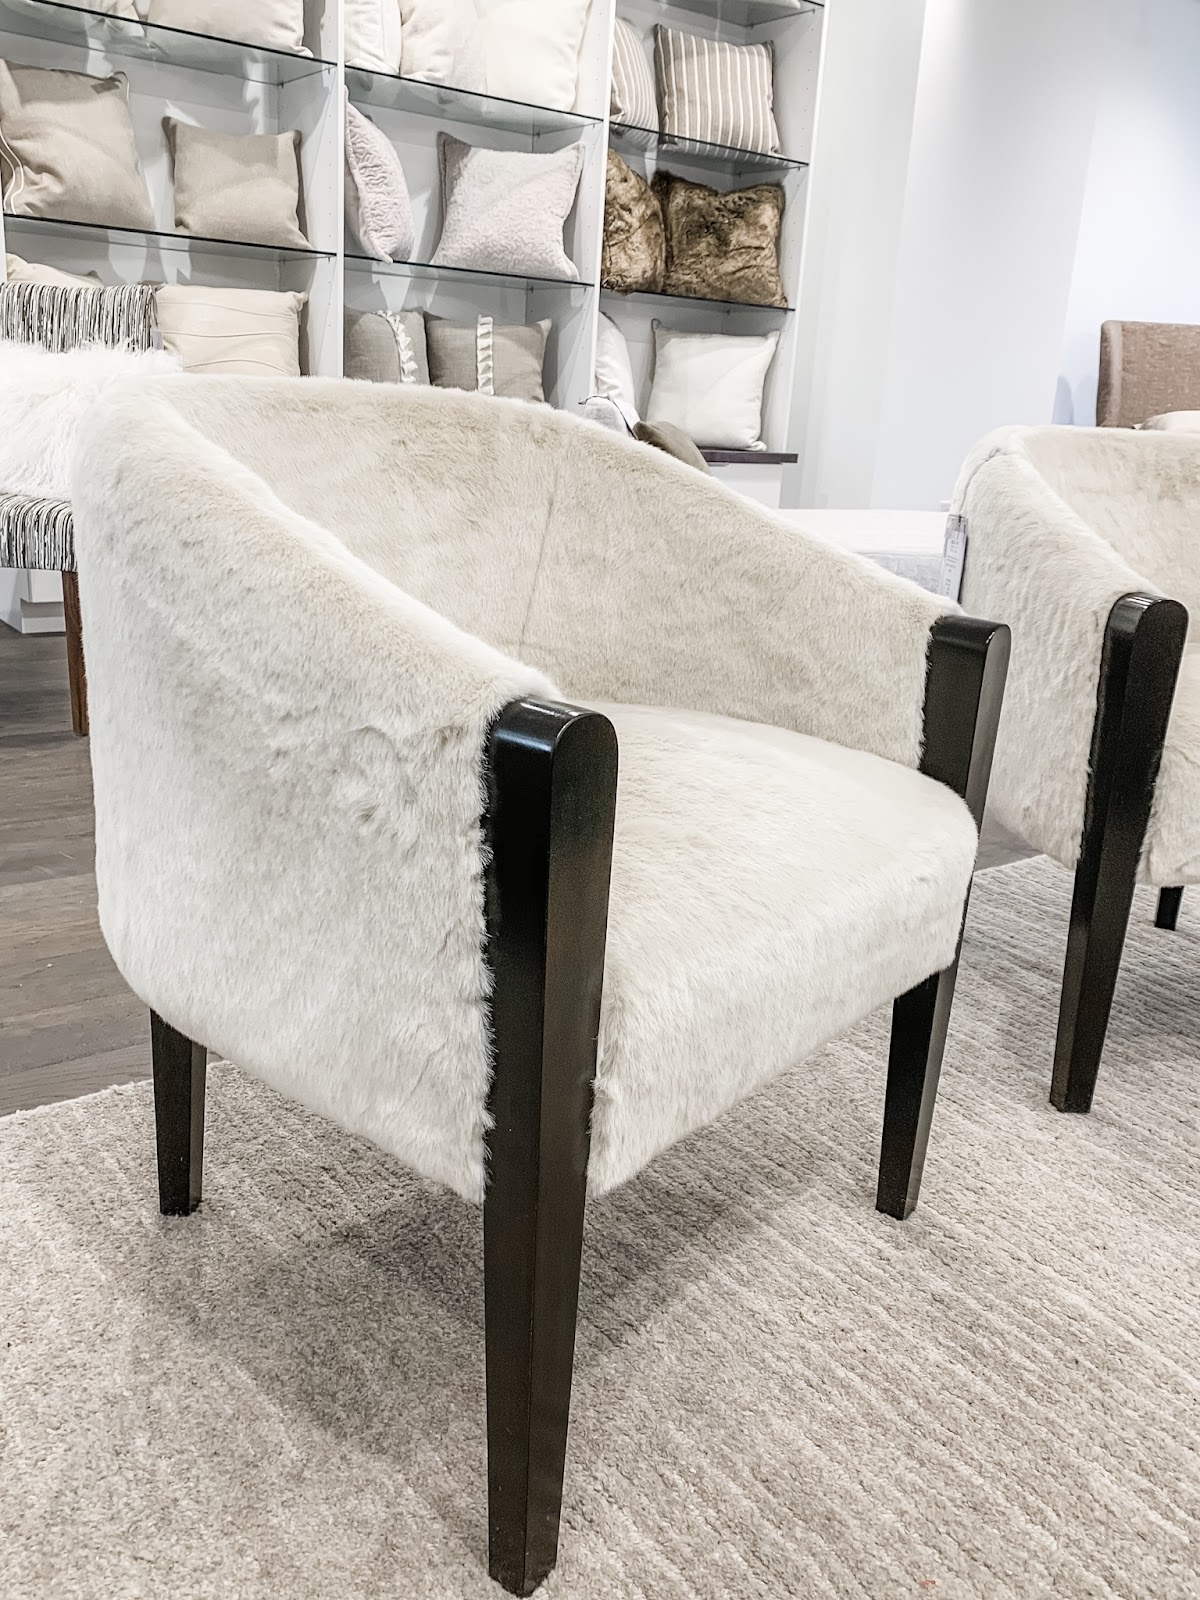 Tara Fust Design northern Atlanta, timeless, effortless home decor and furniture trends: chairs